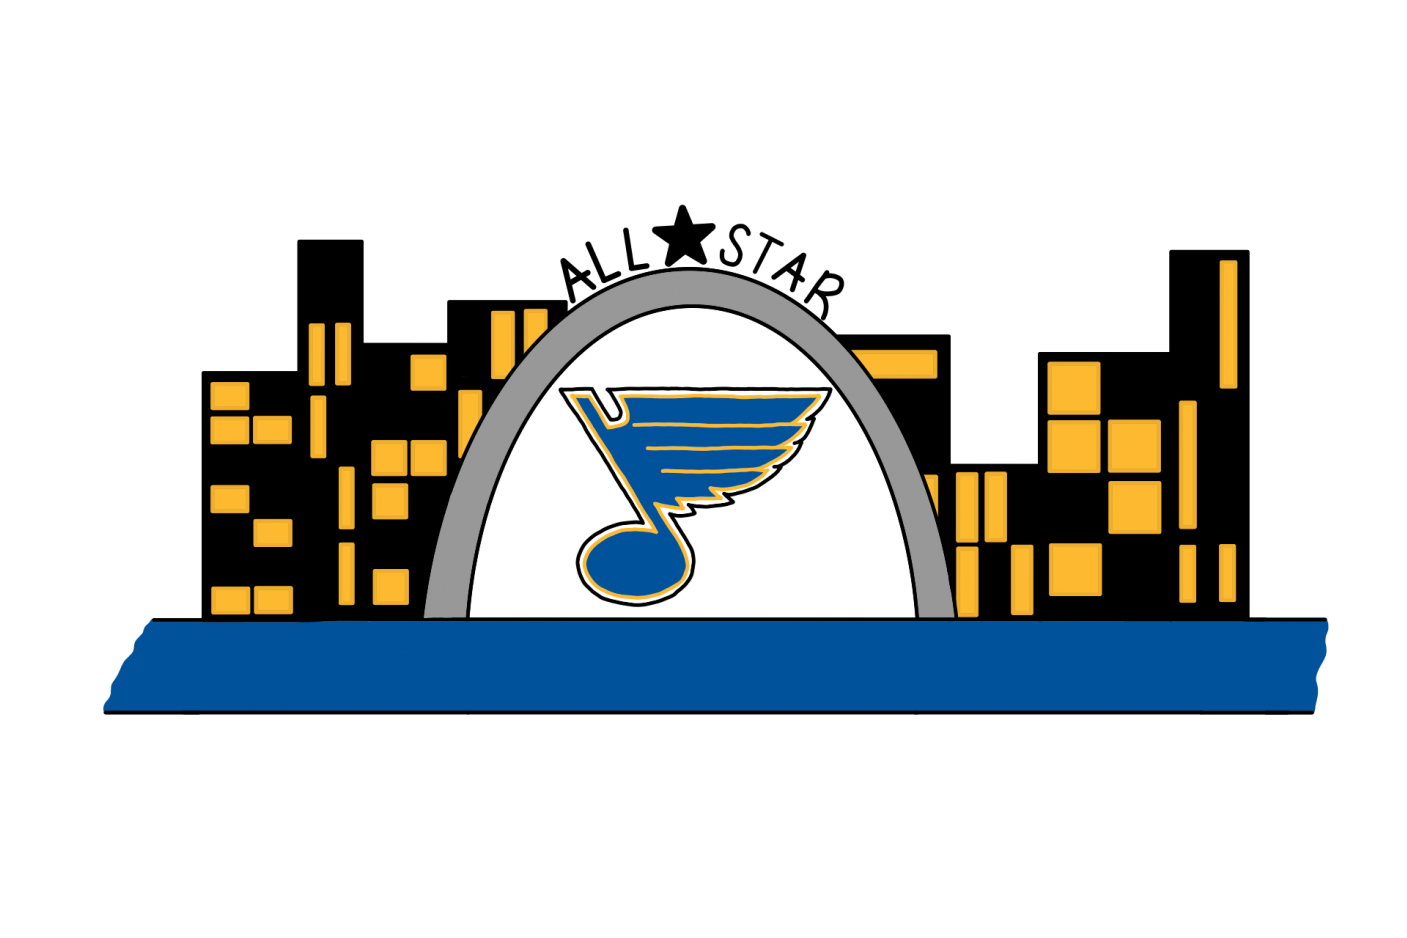 The NHL is bringing their All-Star game to the Enterprise Center in St. Louis